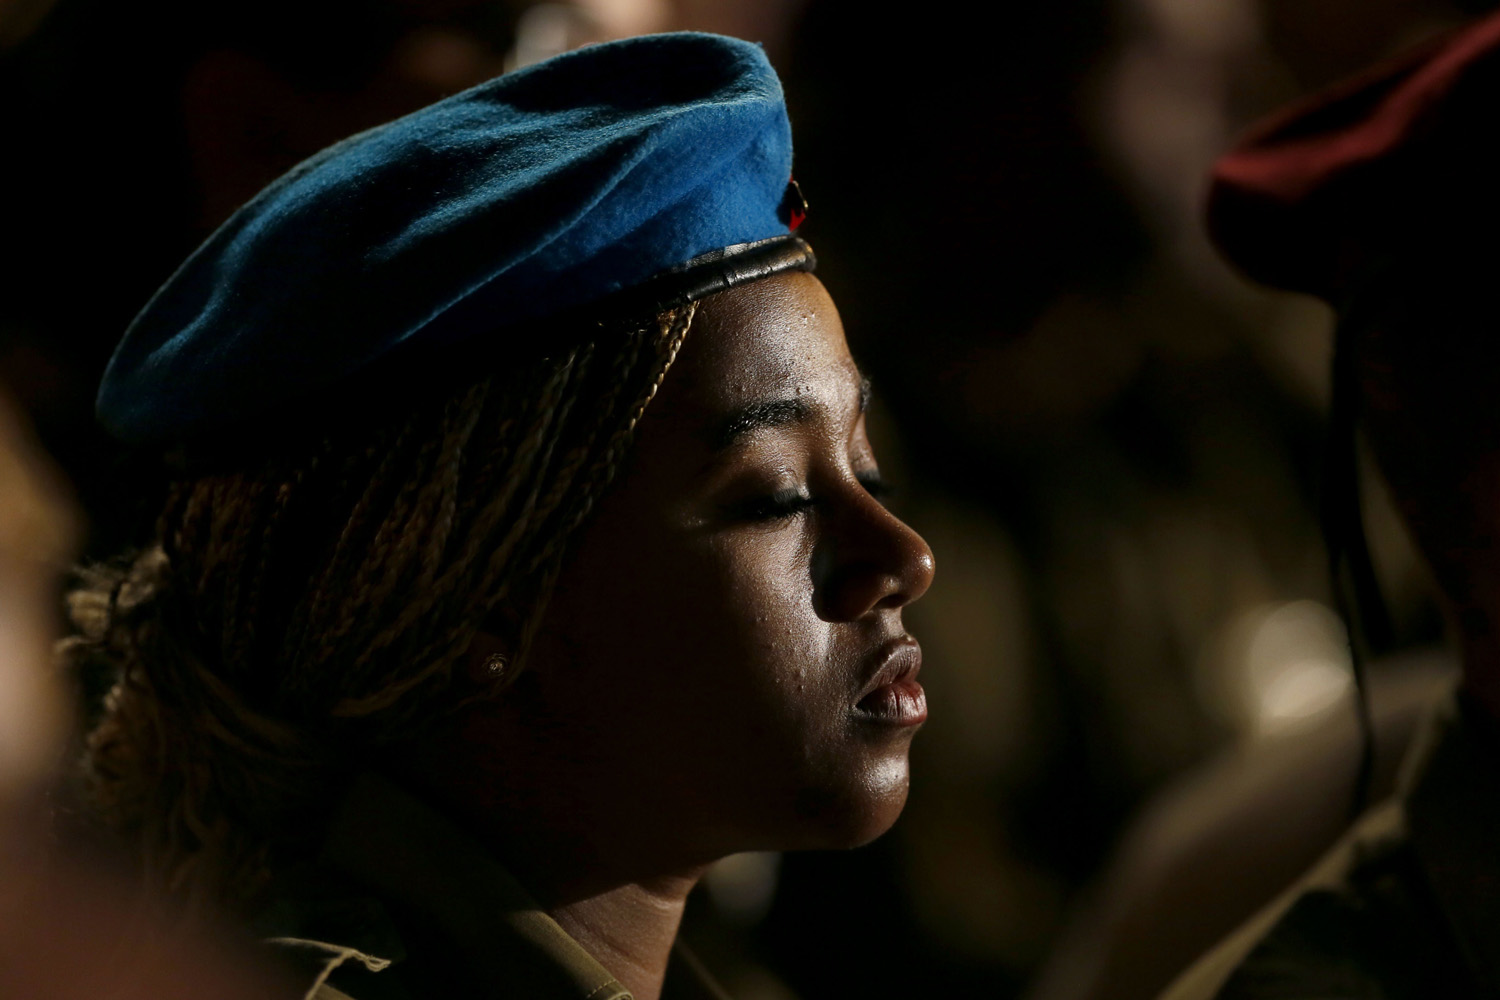 May 4, 2014. An Israeli soldier stands to attention at the start of Remembrance Day for fallen soldiers during a state ceremony at the Western Wall in Jerusalem's Old City.